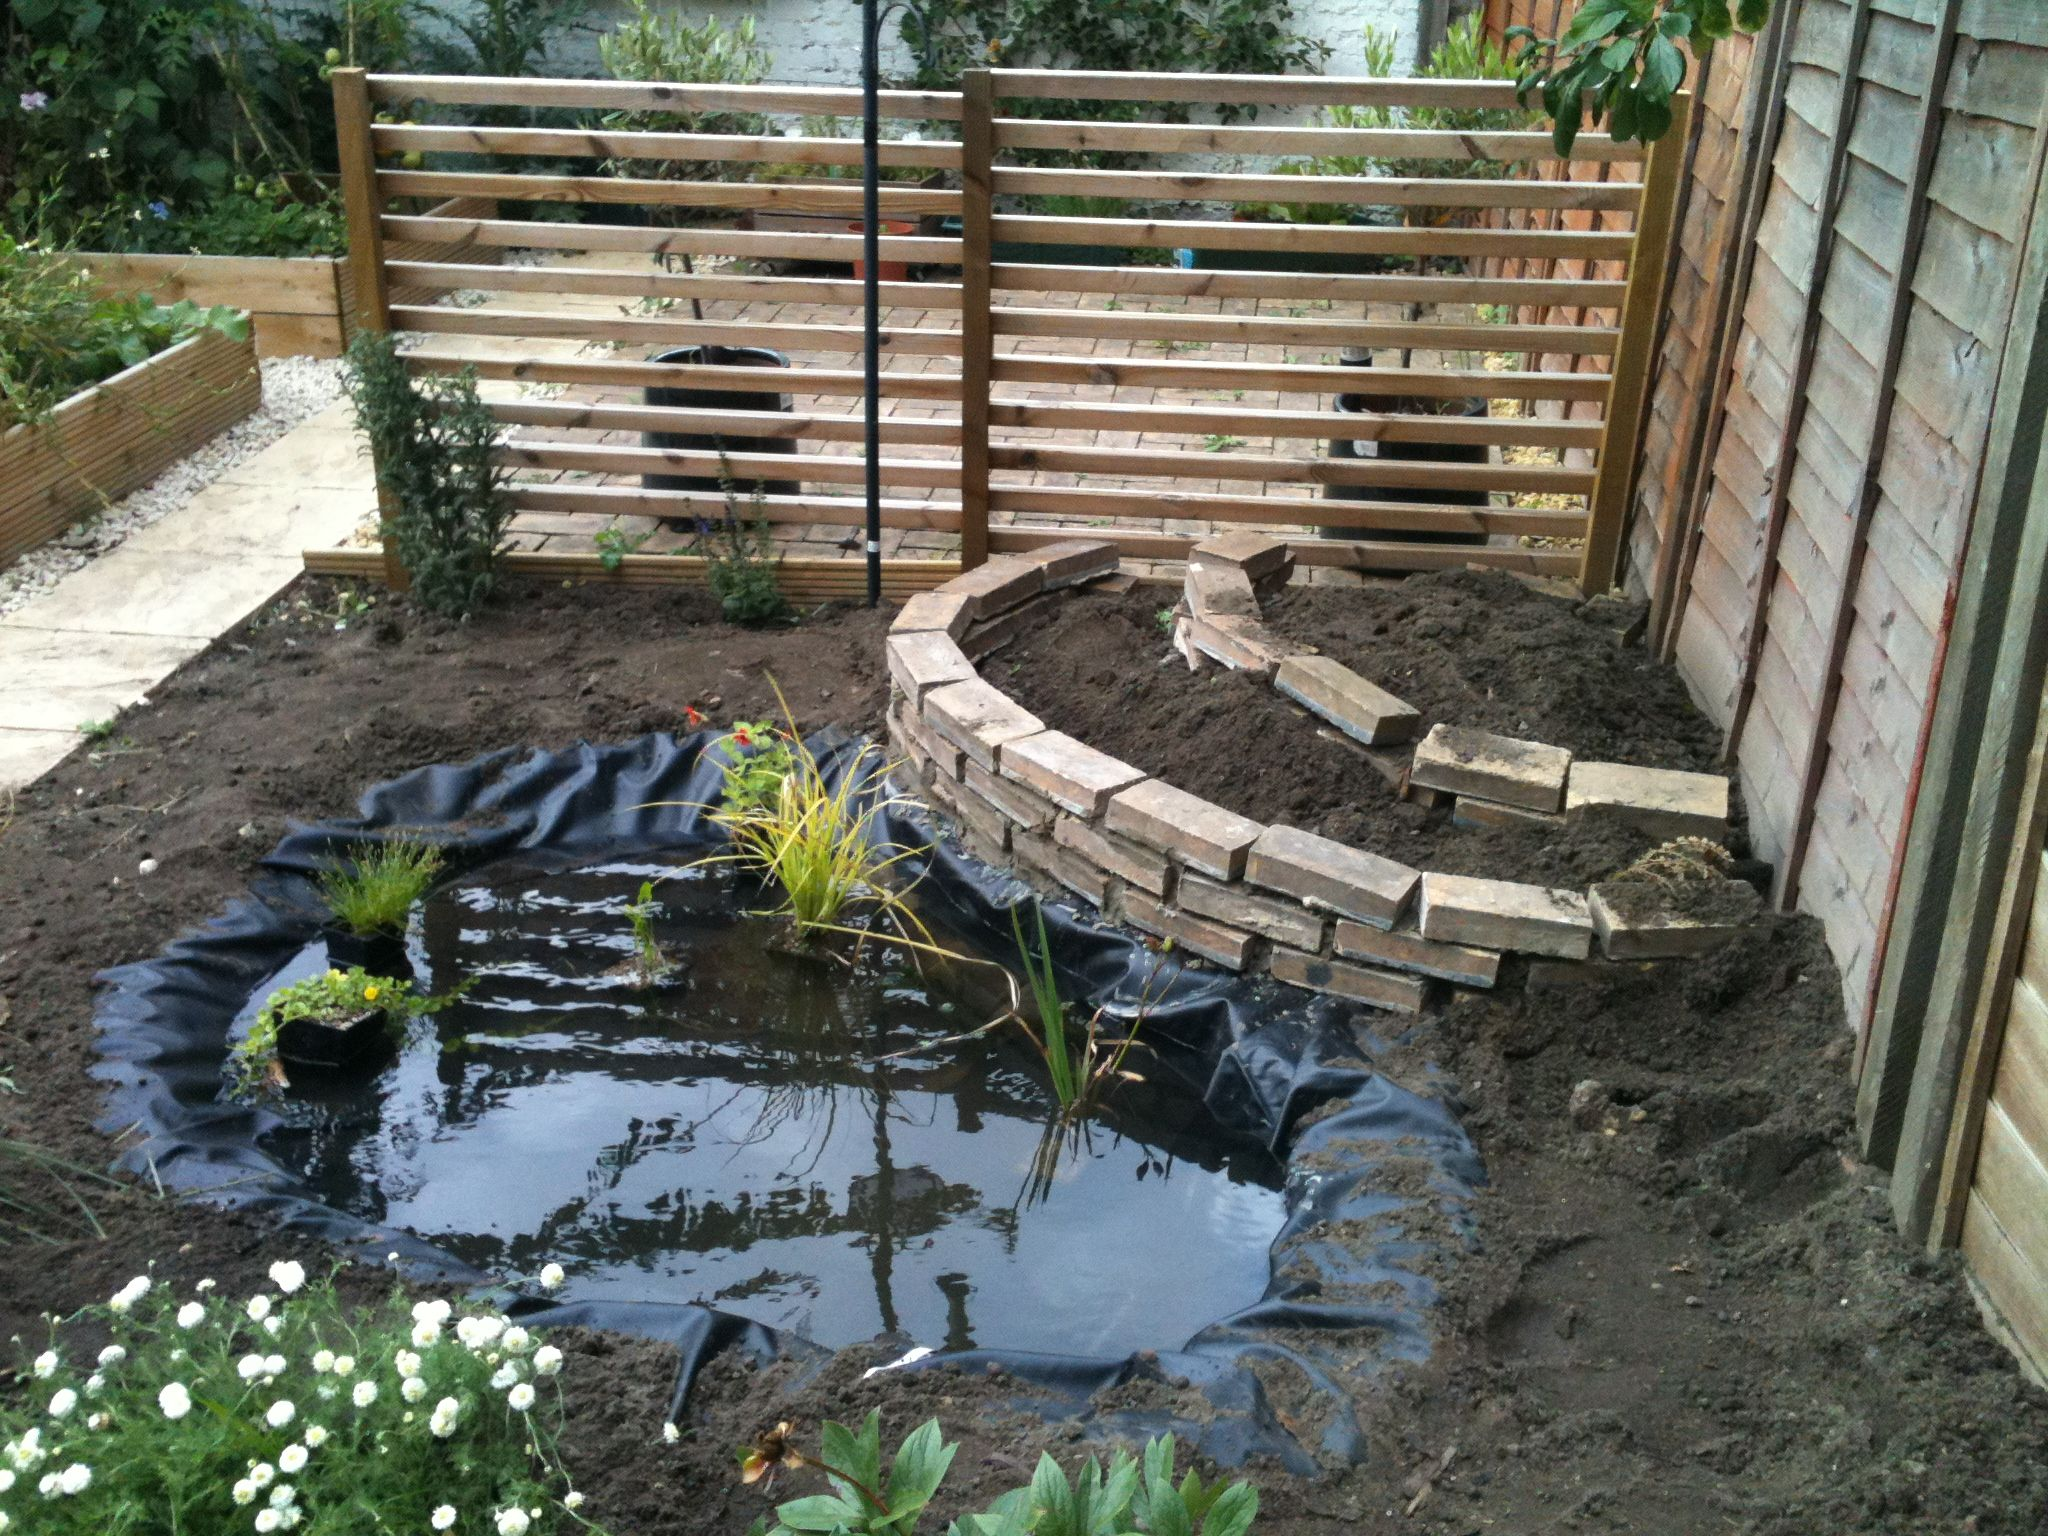 Garden Ponds Designs Concept Create Your Own Garden Pond Nature Conservation Lewisham Gifh3Dtg .